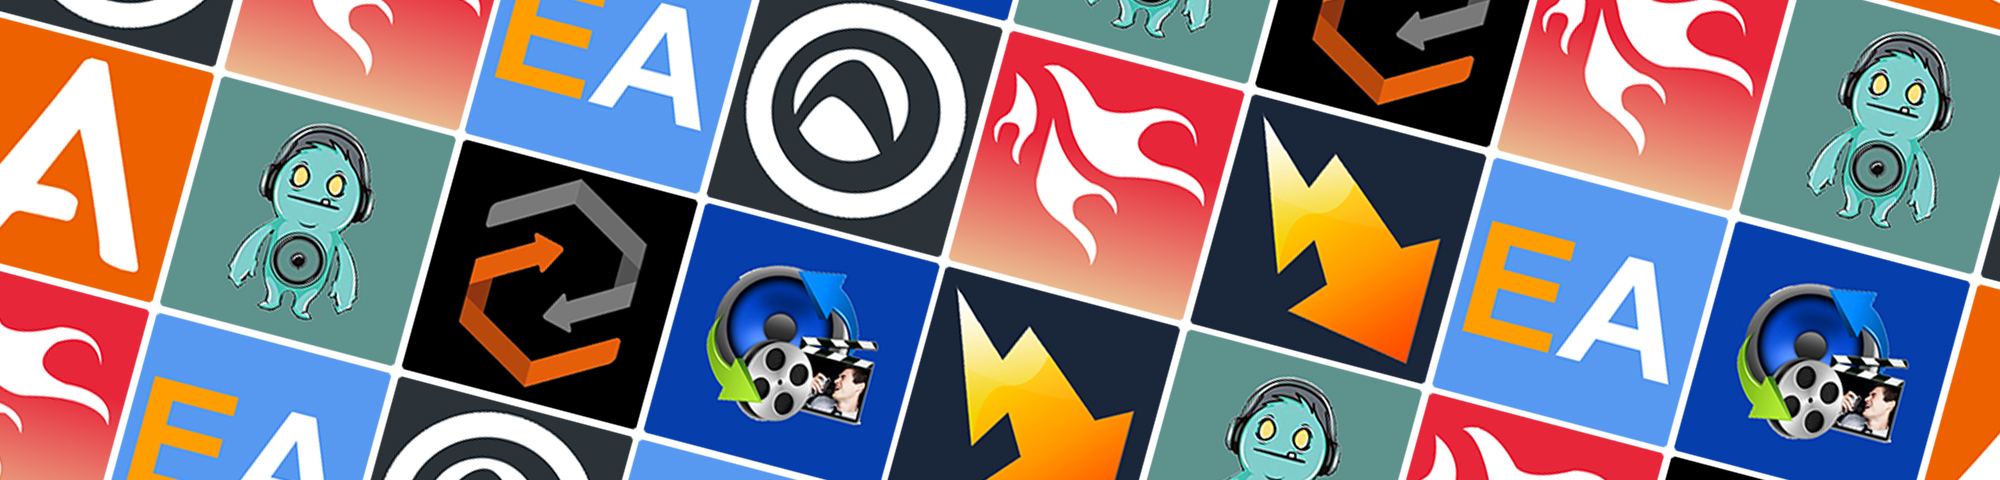 Best Audio Converter Software 2019 - Reviews and Test